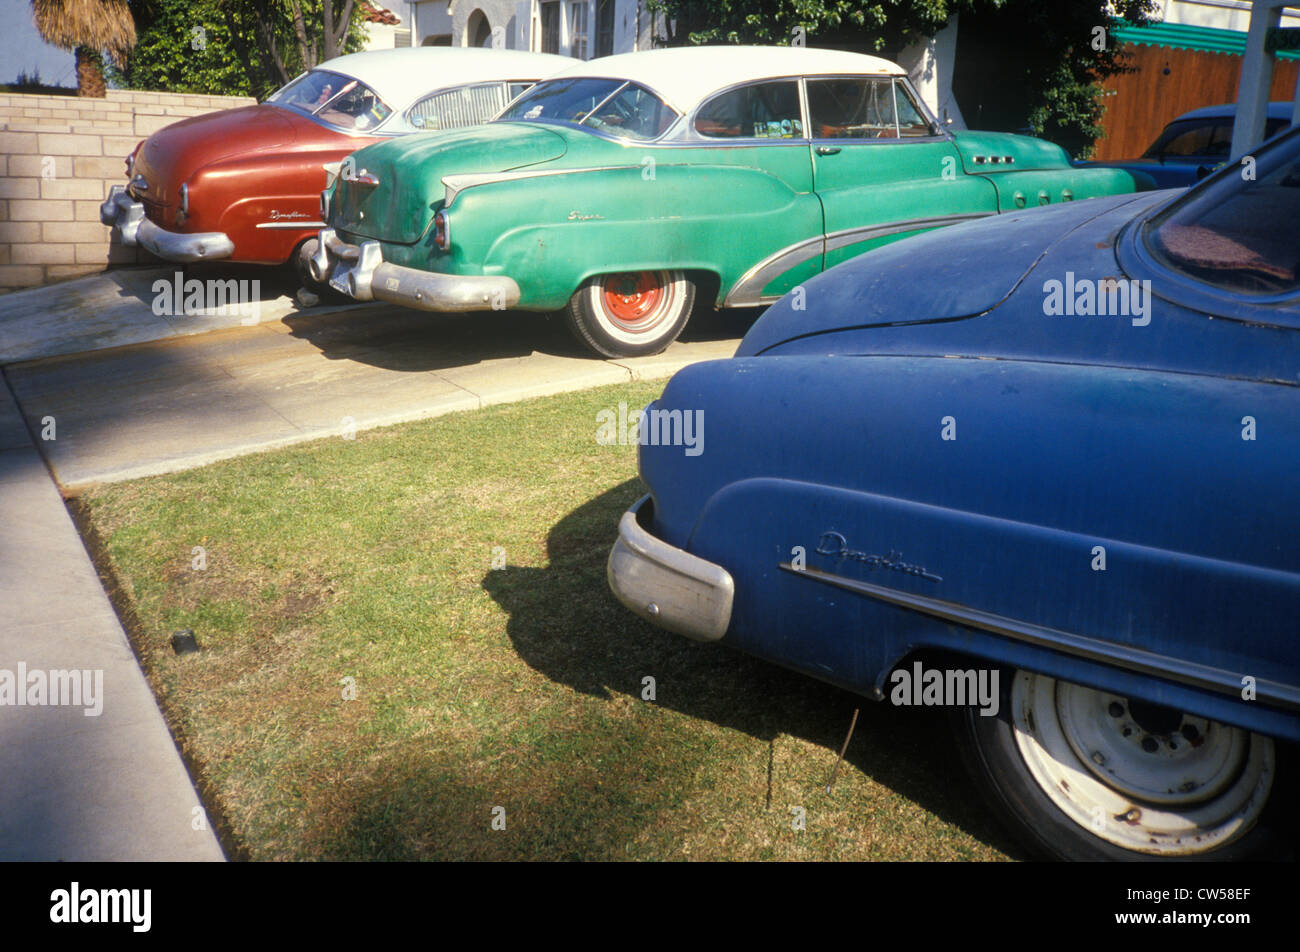 Old Junk Cars In California Stock Photos & Old Junk Cars In ...